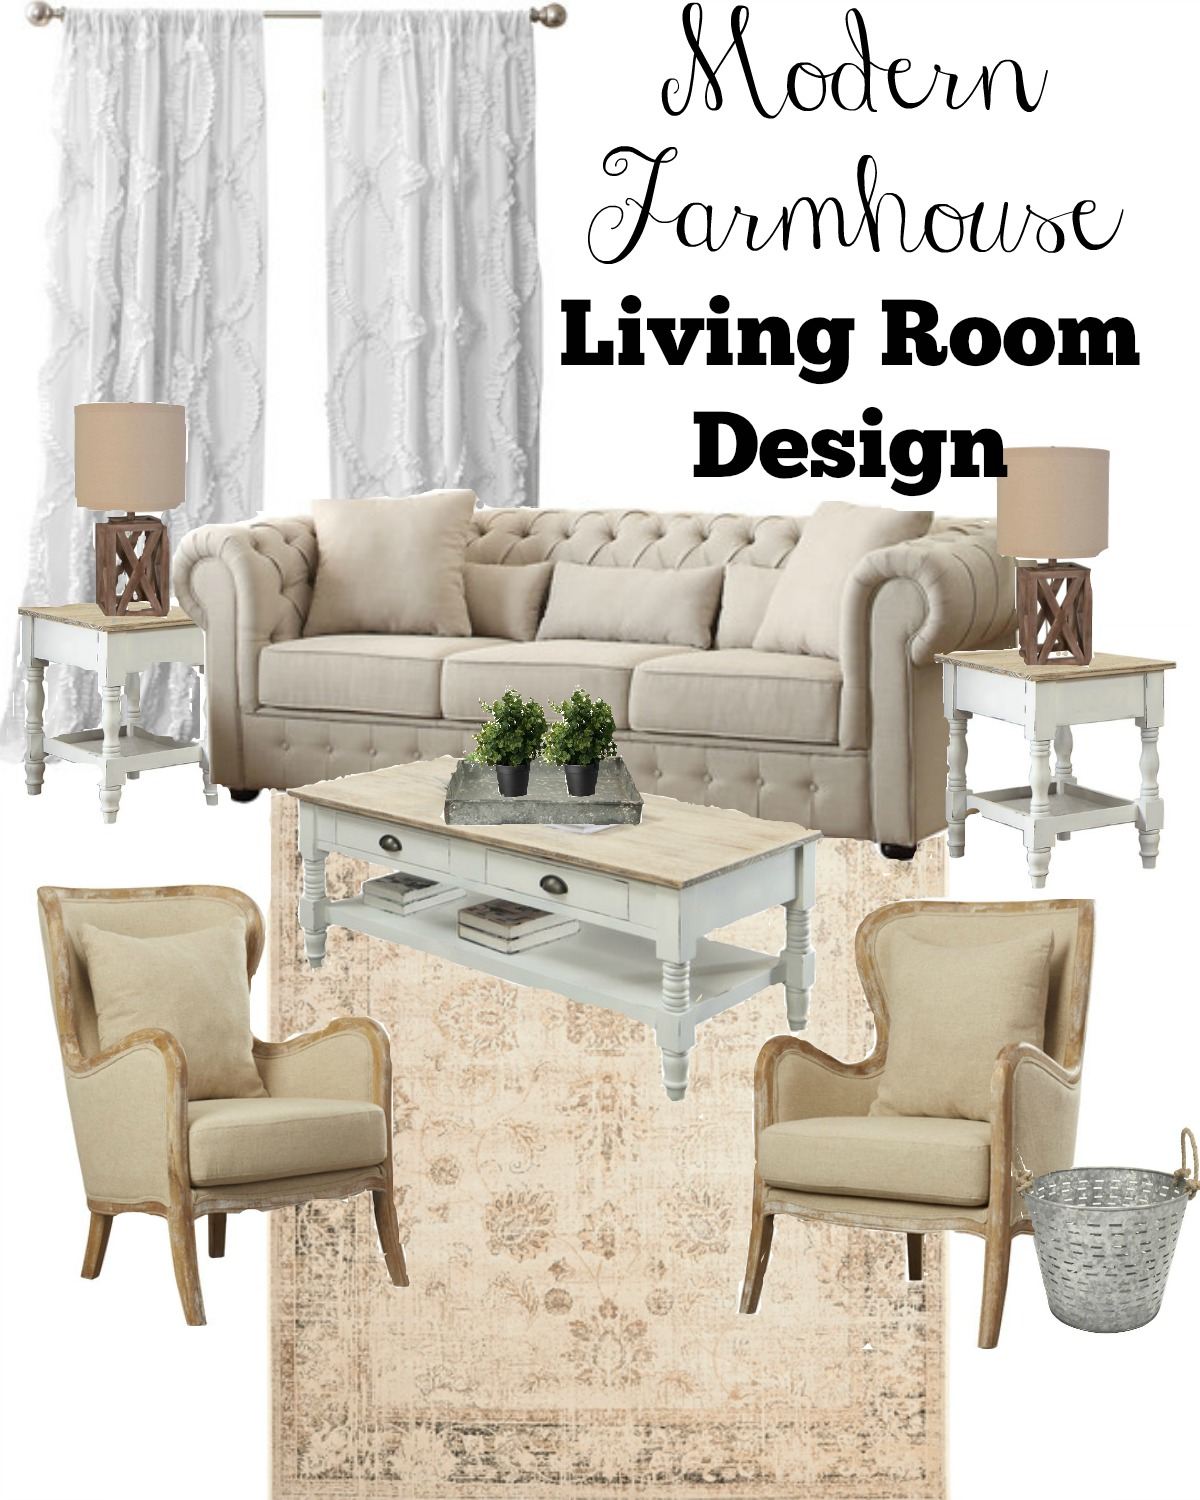 3 key tips for a farmhouse style living room for Seating furniture living room